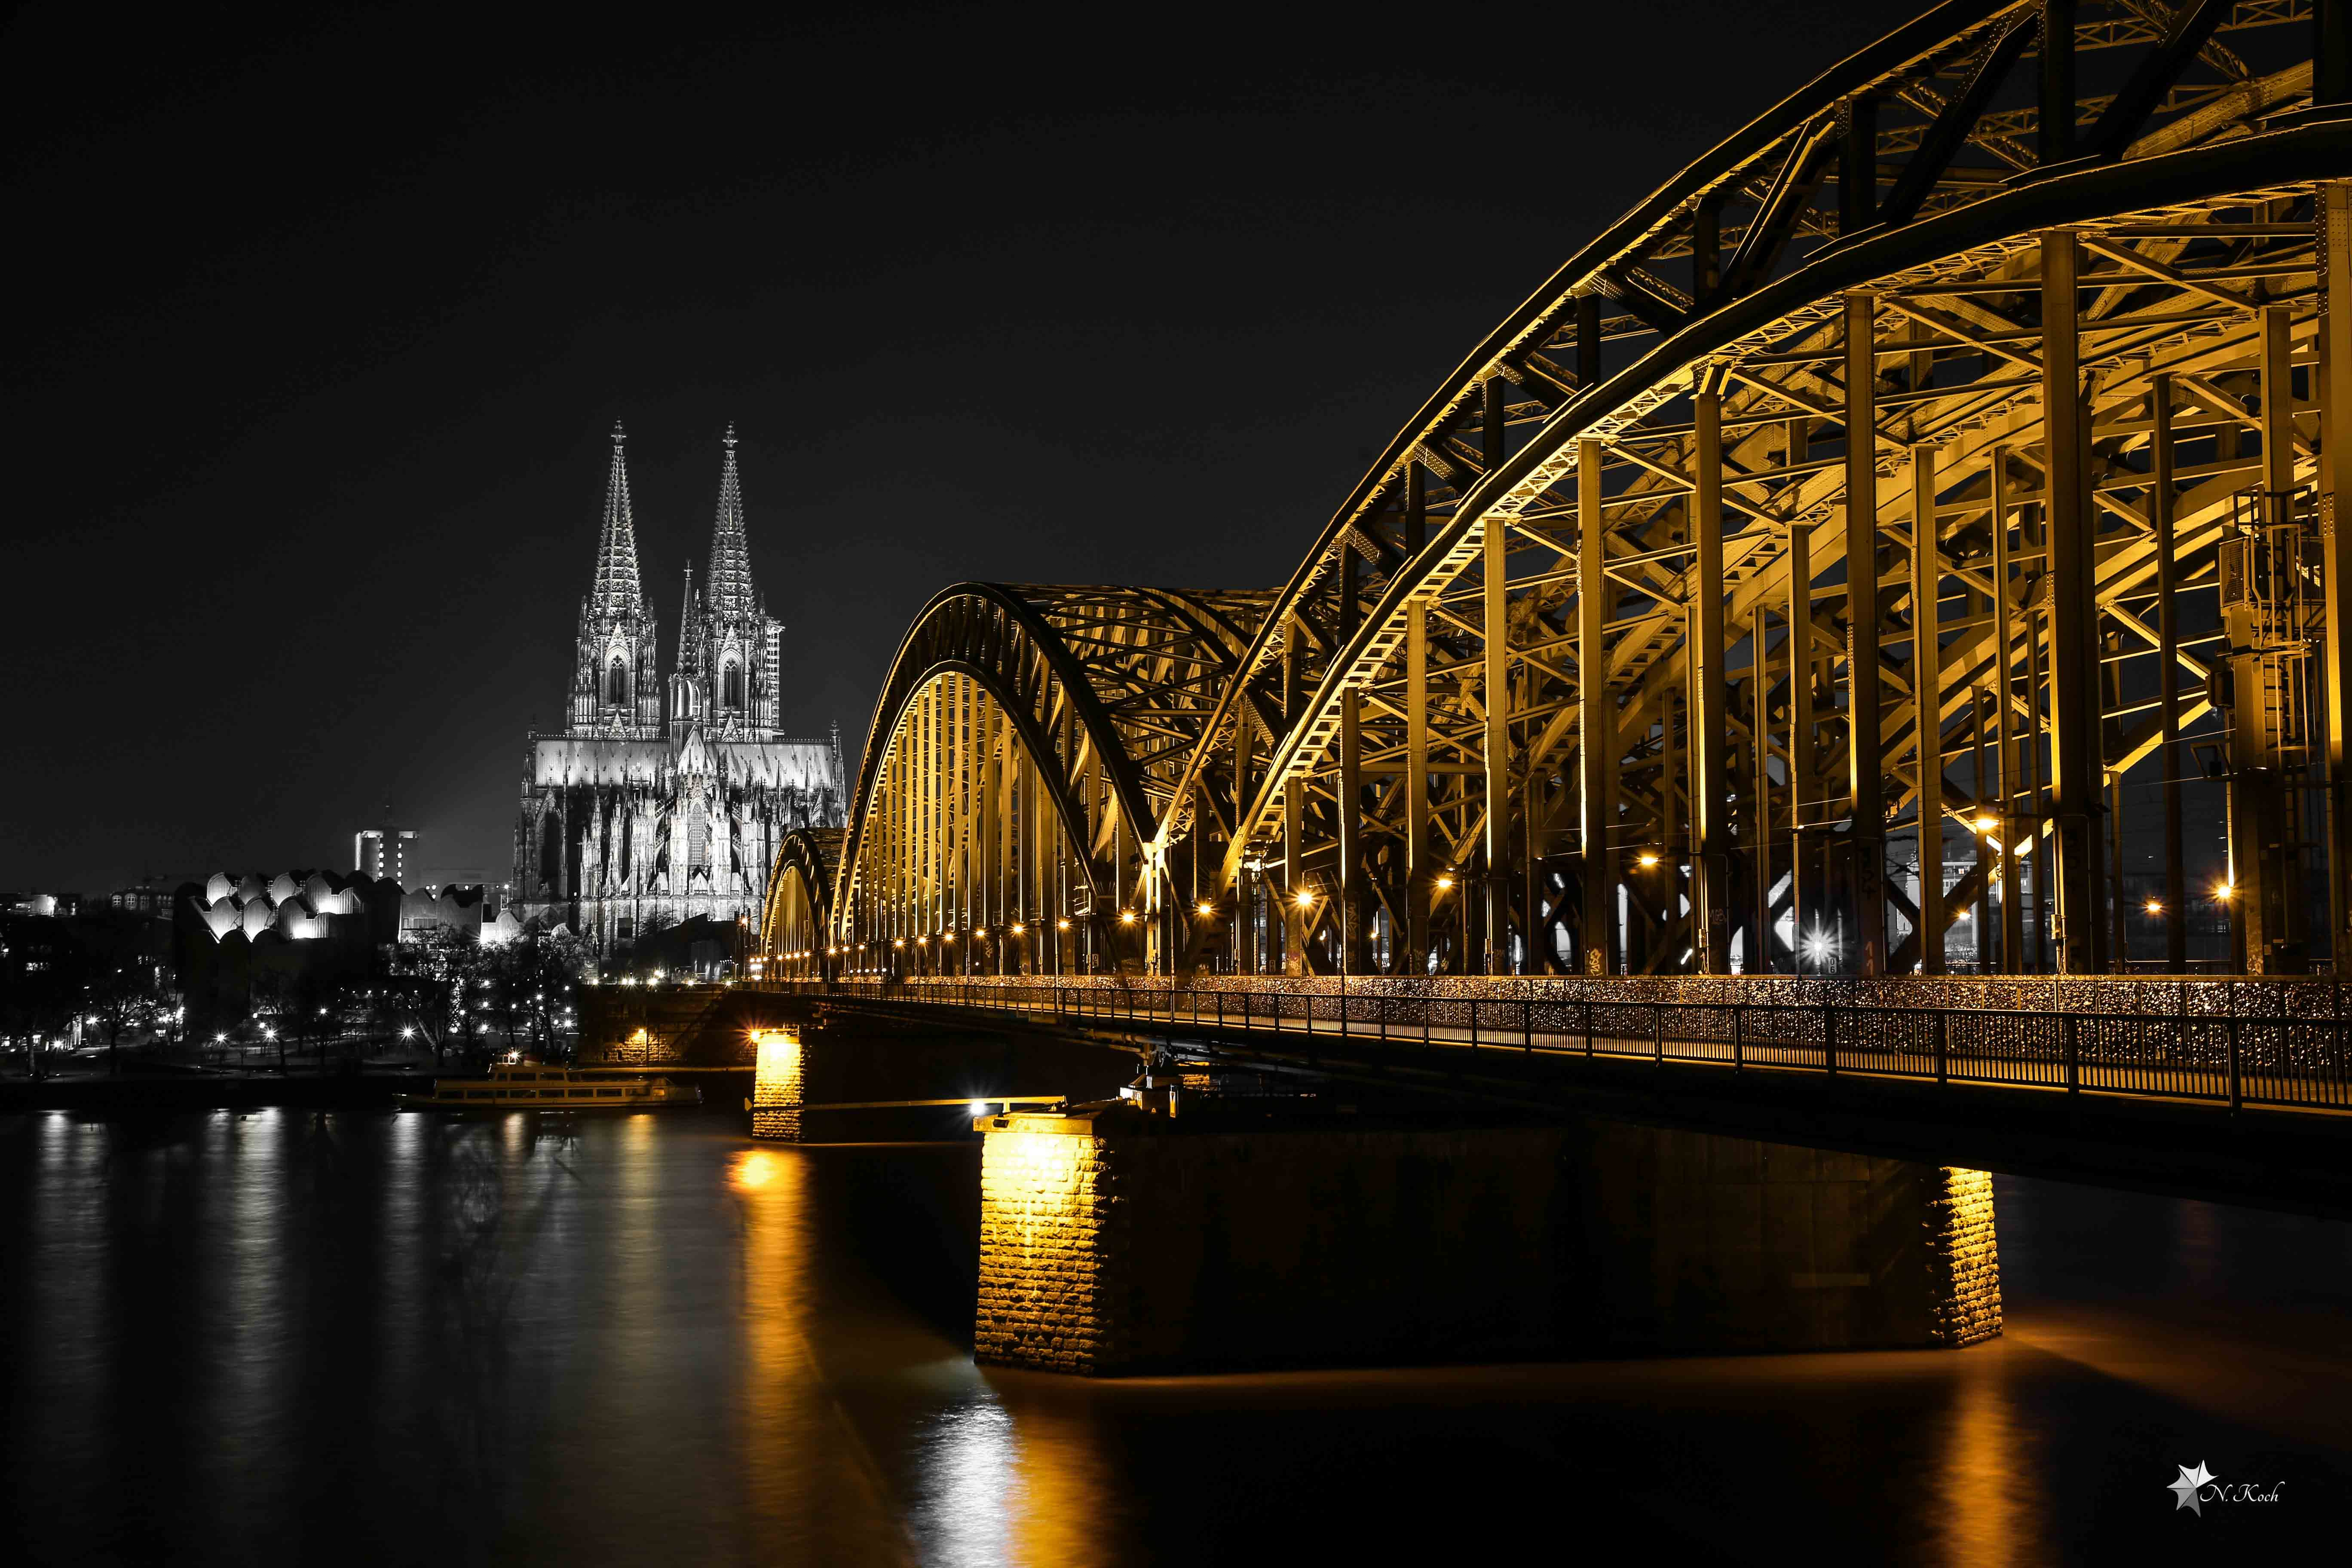 2015, Cologne | The dom of Cologne and the Hohenzollern Bridge